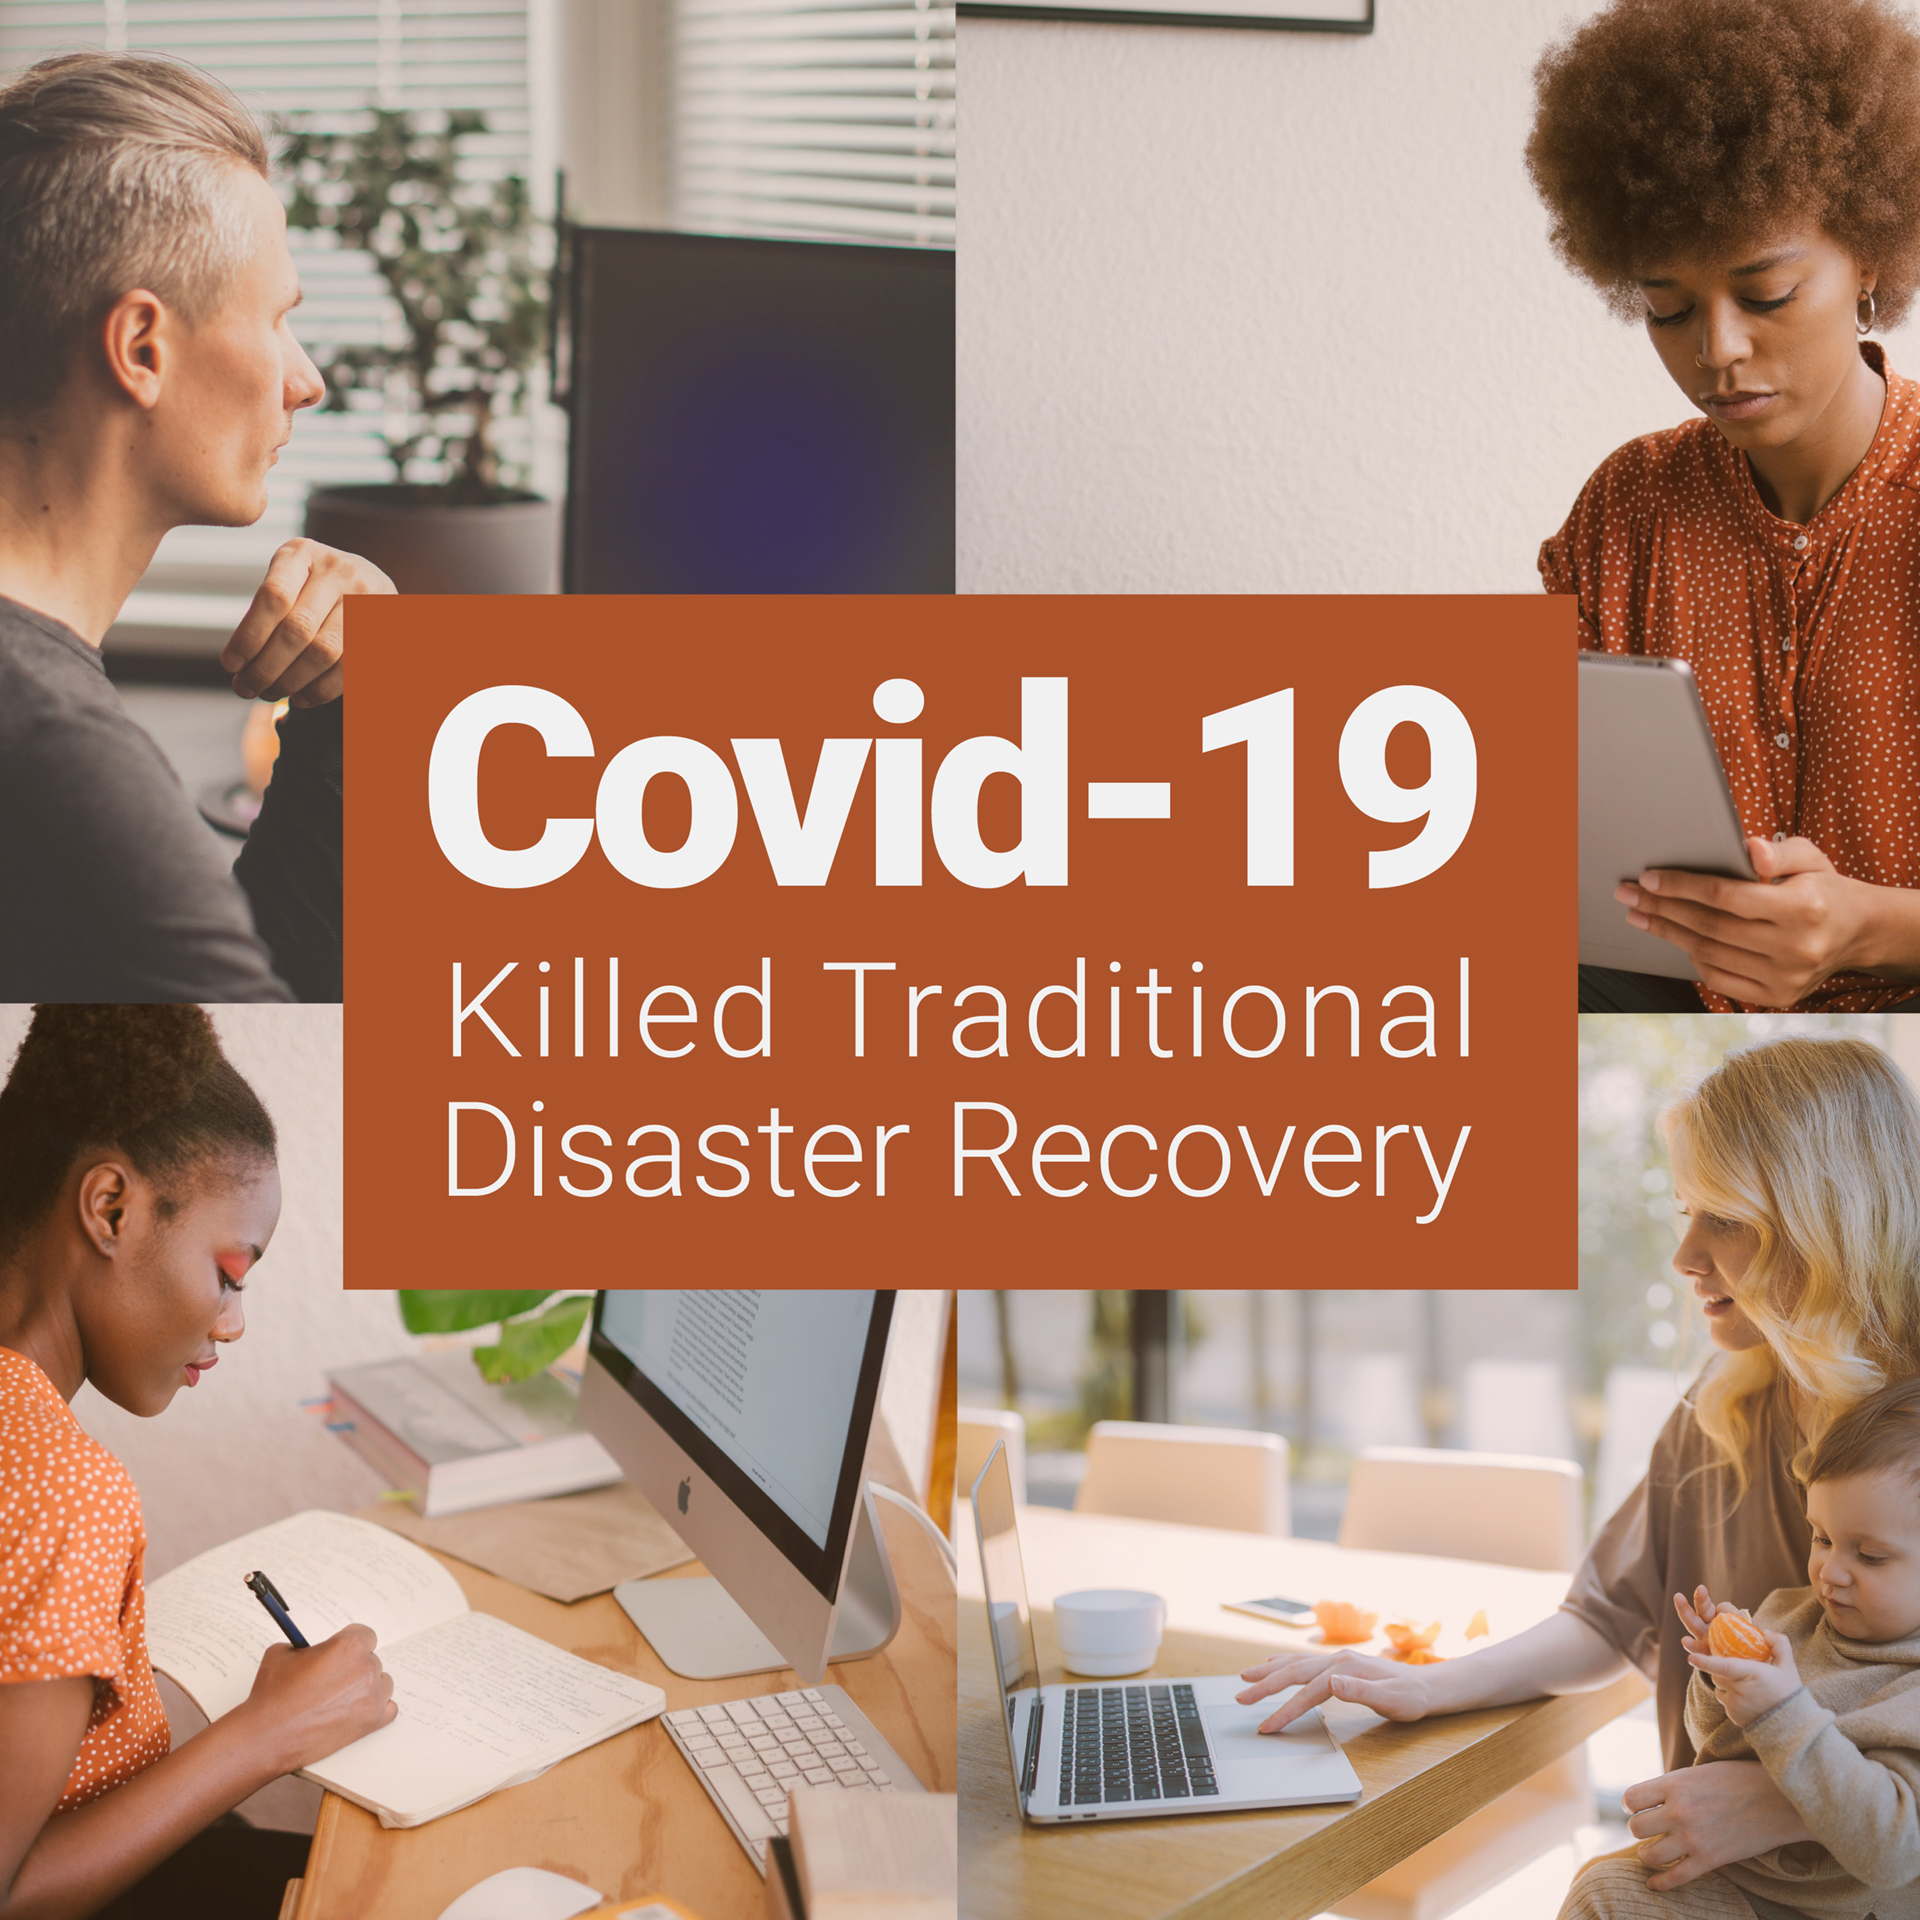 Covid-19-killed-traditional-disaster-recovery.jpg